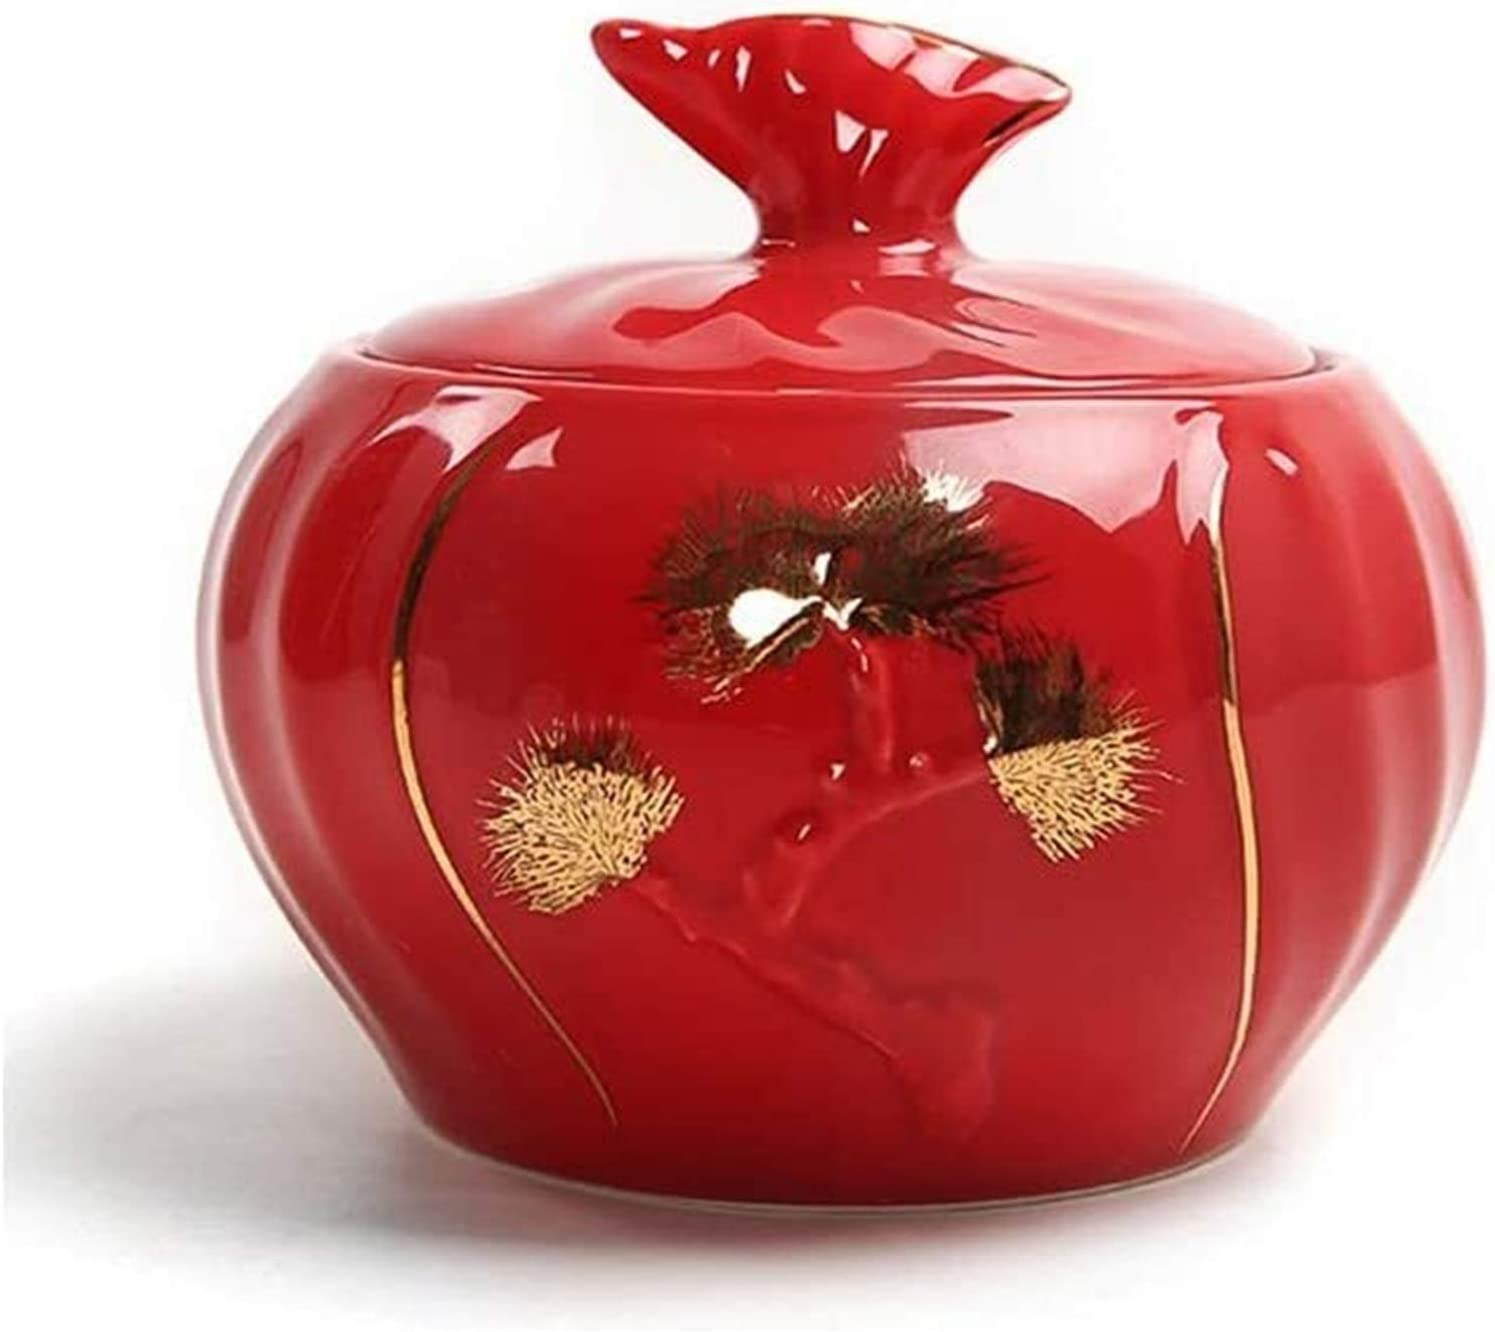 Cremation Urns for Adult Fashion Burial Manufacturer OFFicial shop Funeral Ashes Decorative